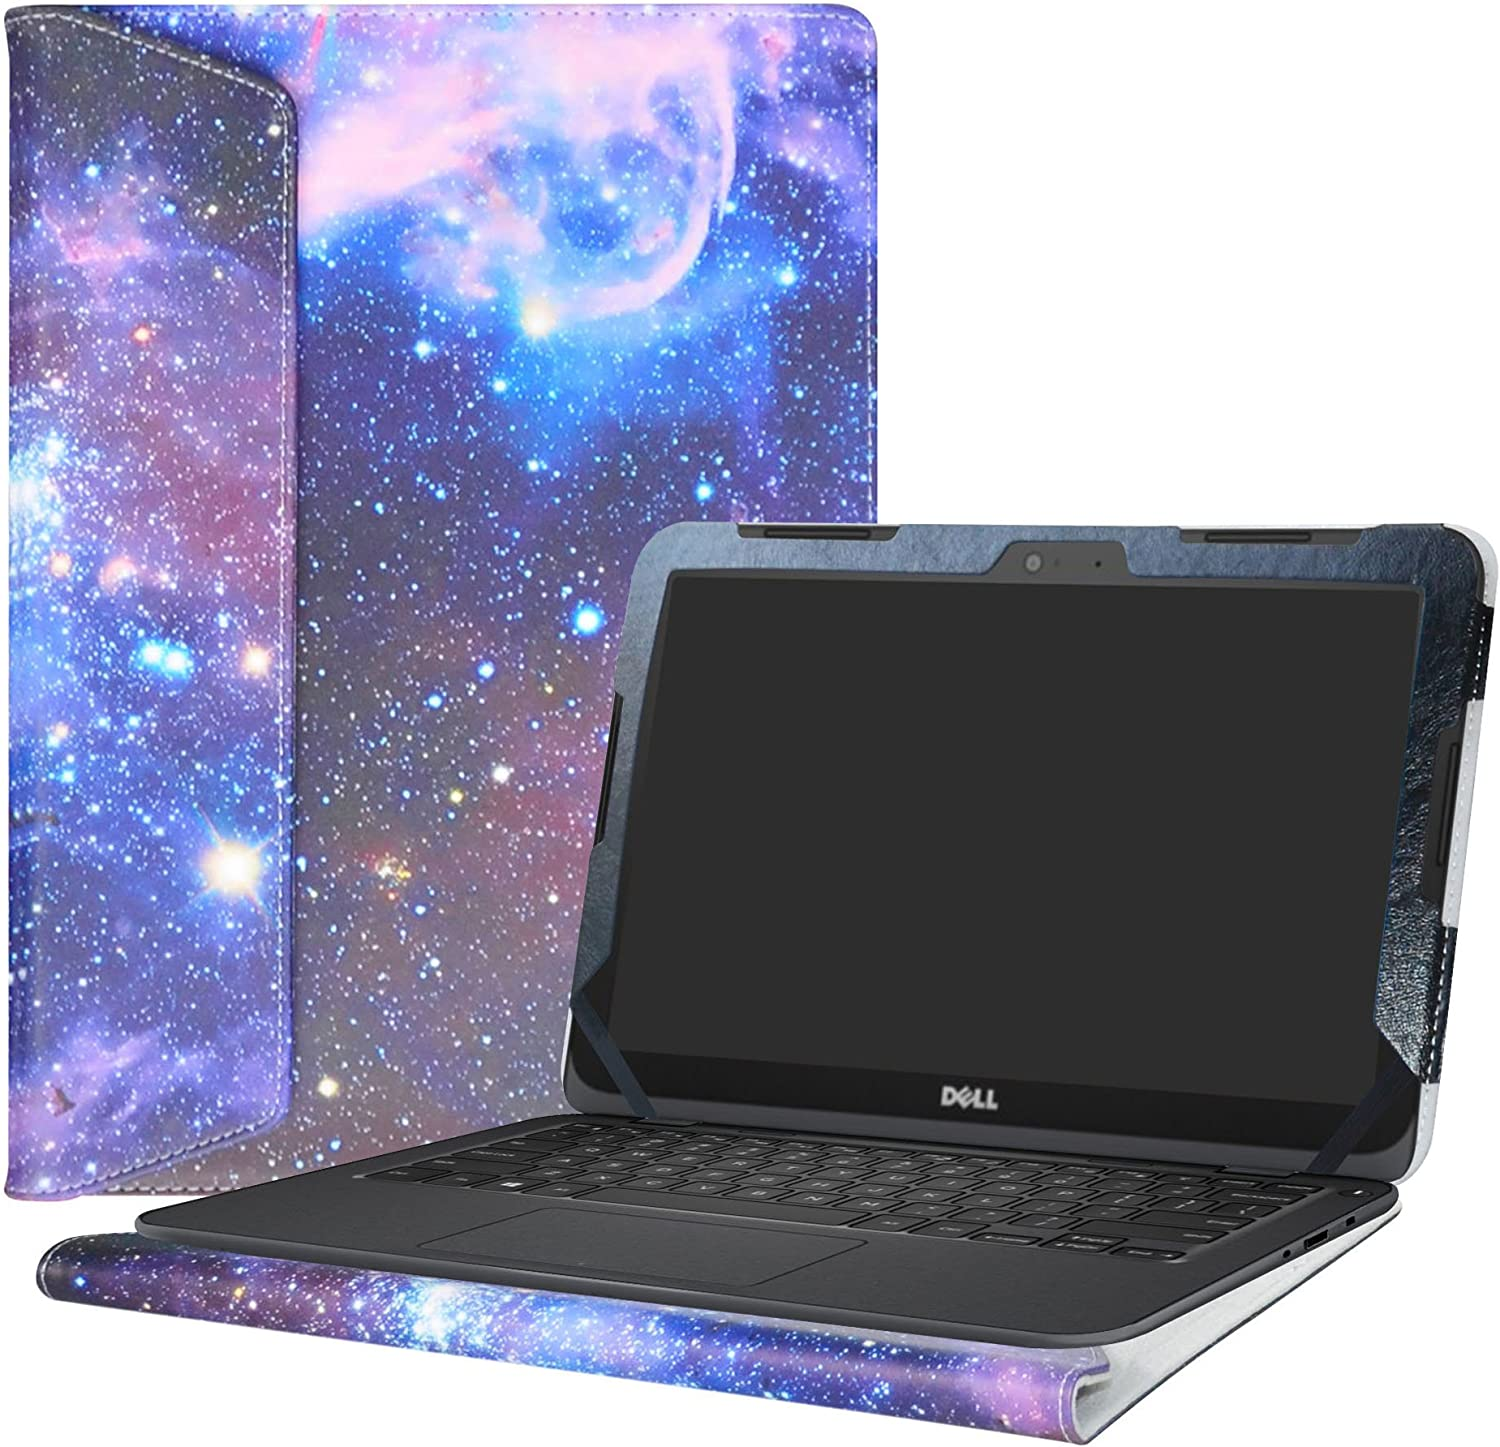 """Alapmk Protective Case Cover for 11.6"""" Dell Inspiron 11 3180 3162 3164 Series Laptop(Warning:Not fit Inspiron 11 3137 3138 3147 3148 Series),Galaxy"""